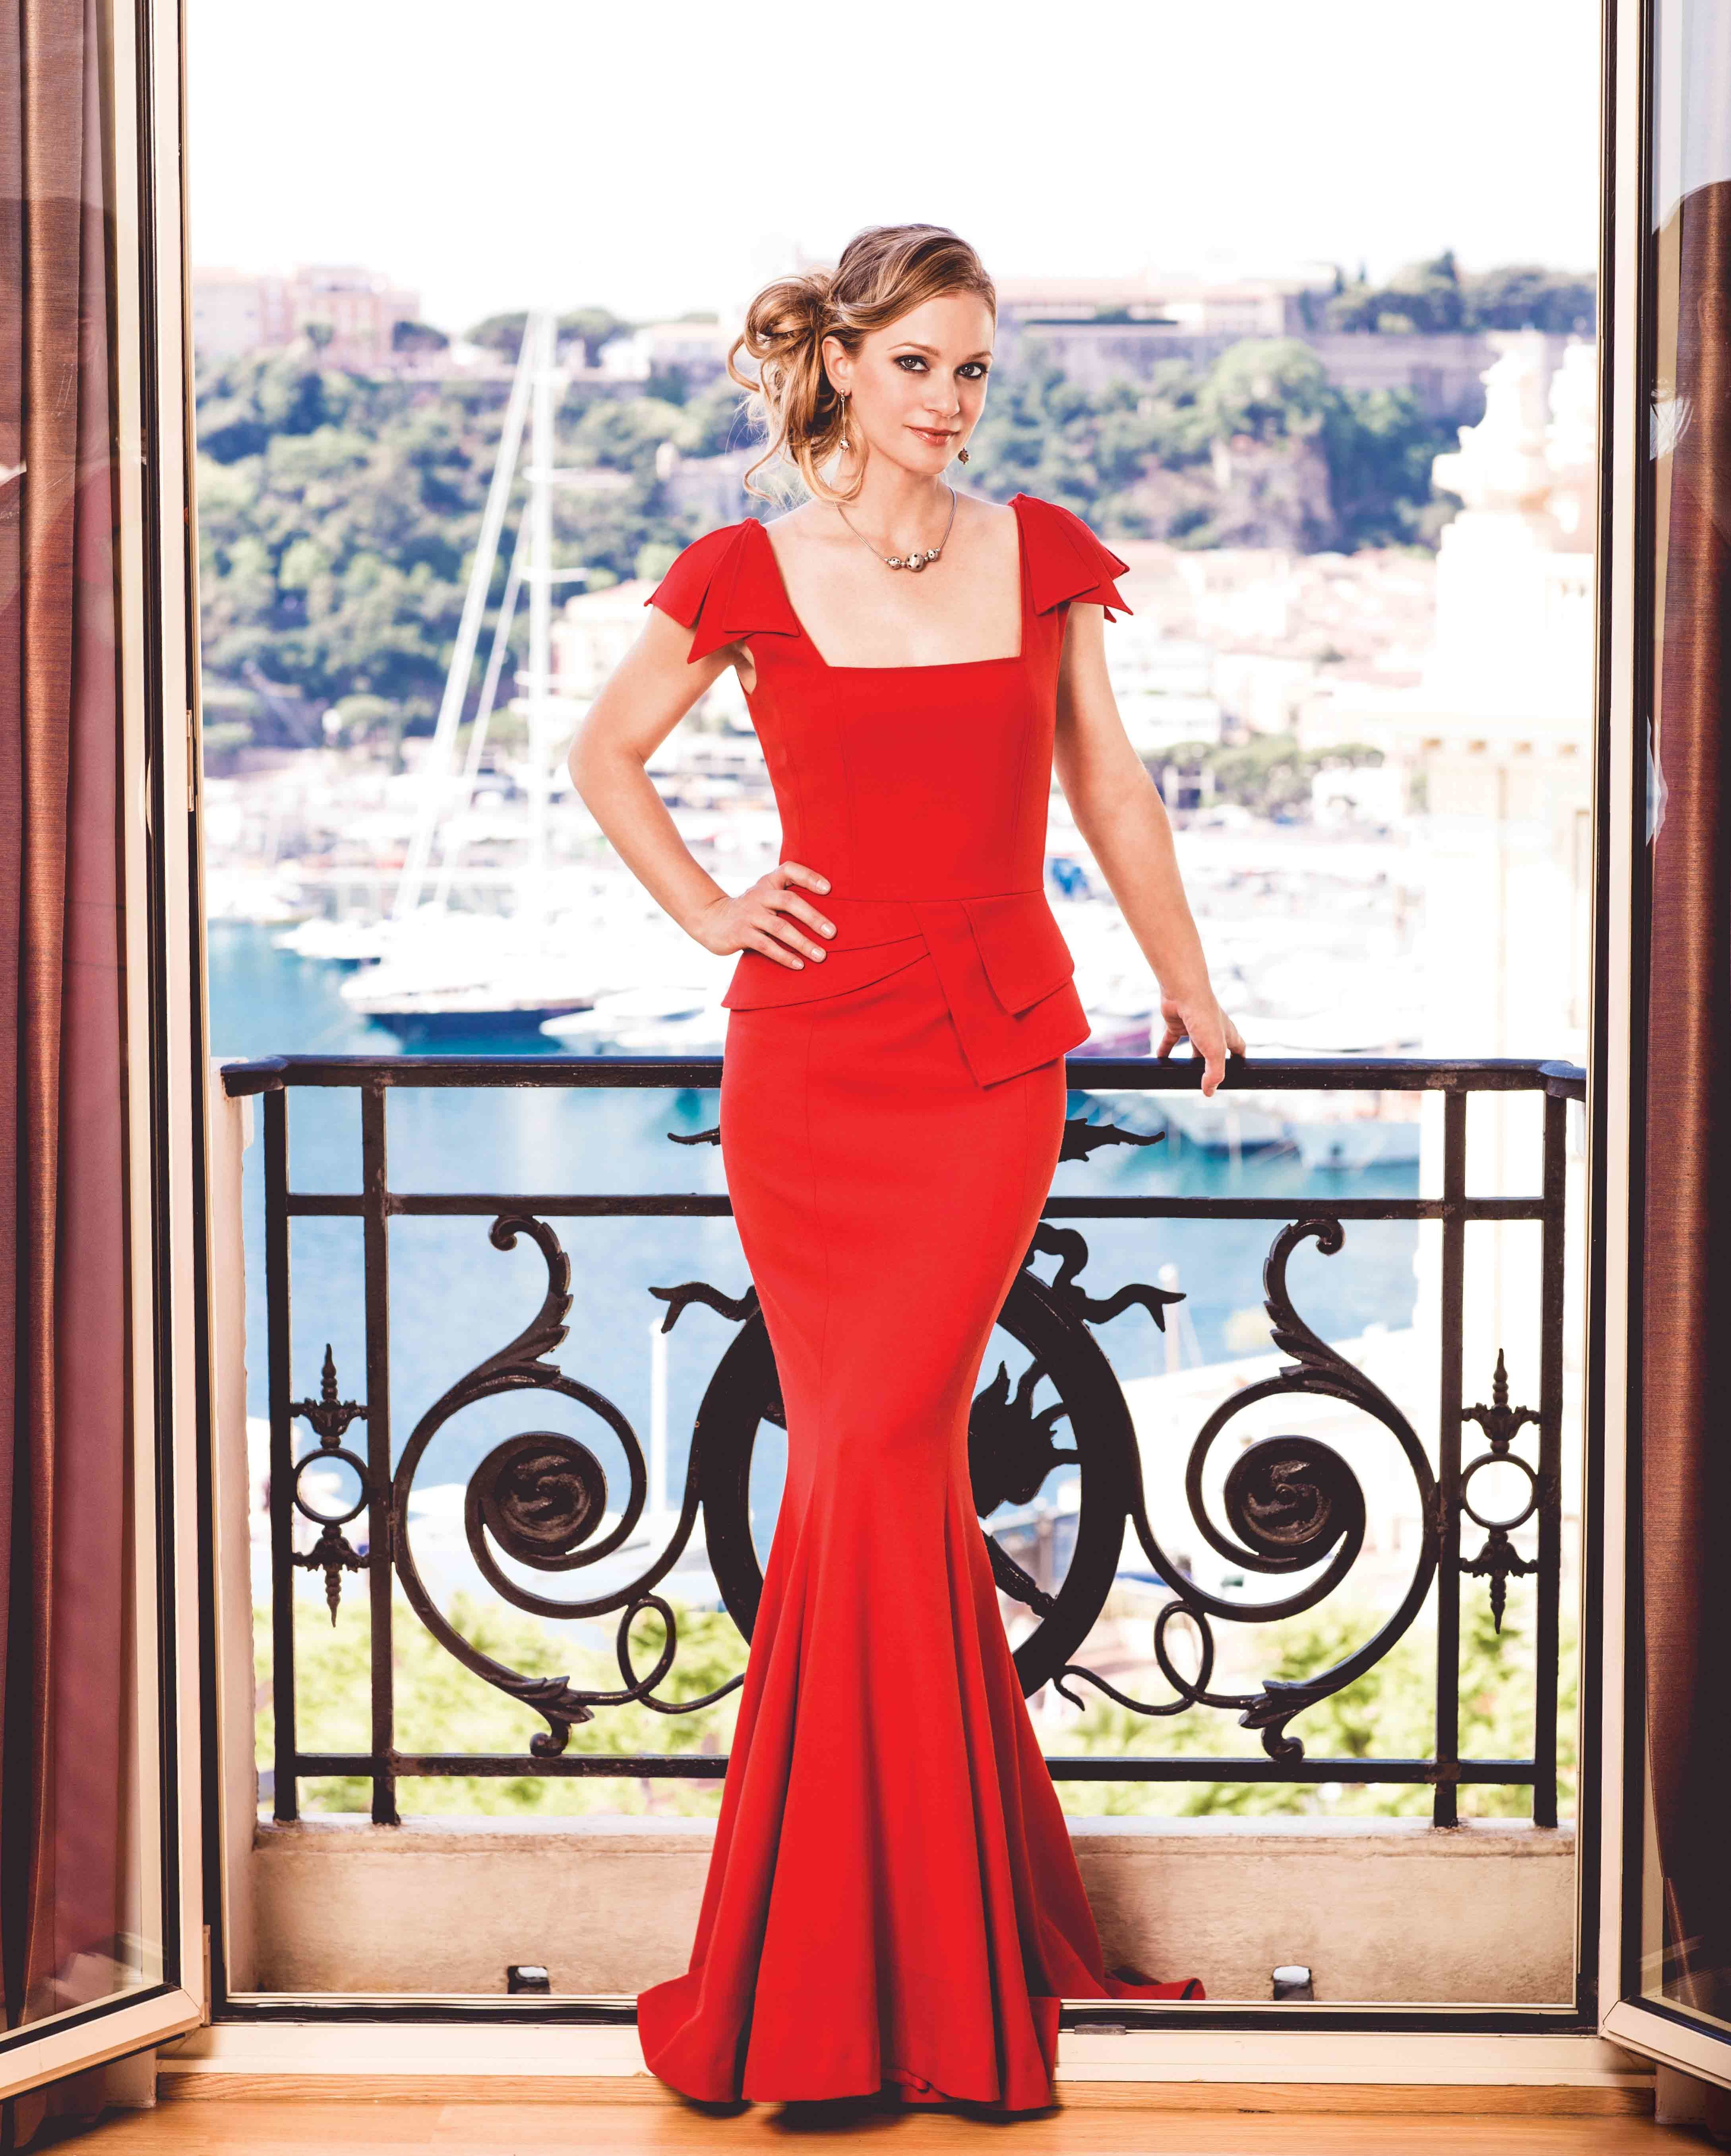 AJ Cook on a terrace in a red dress